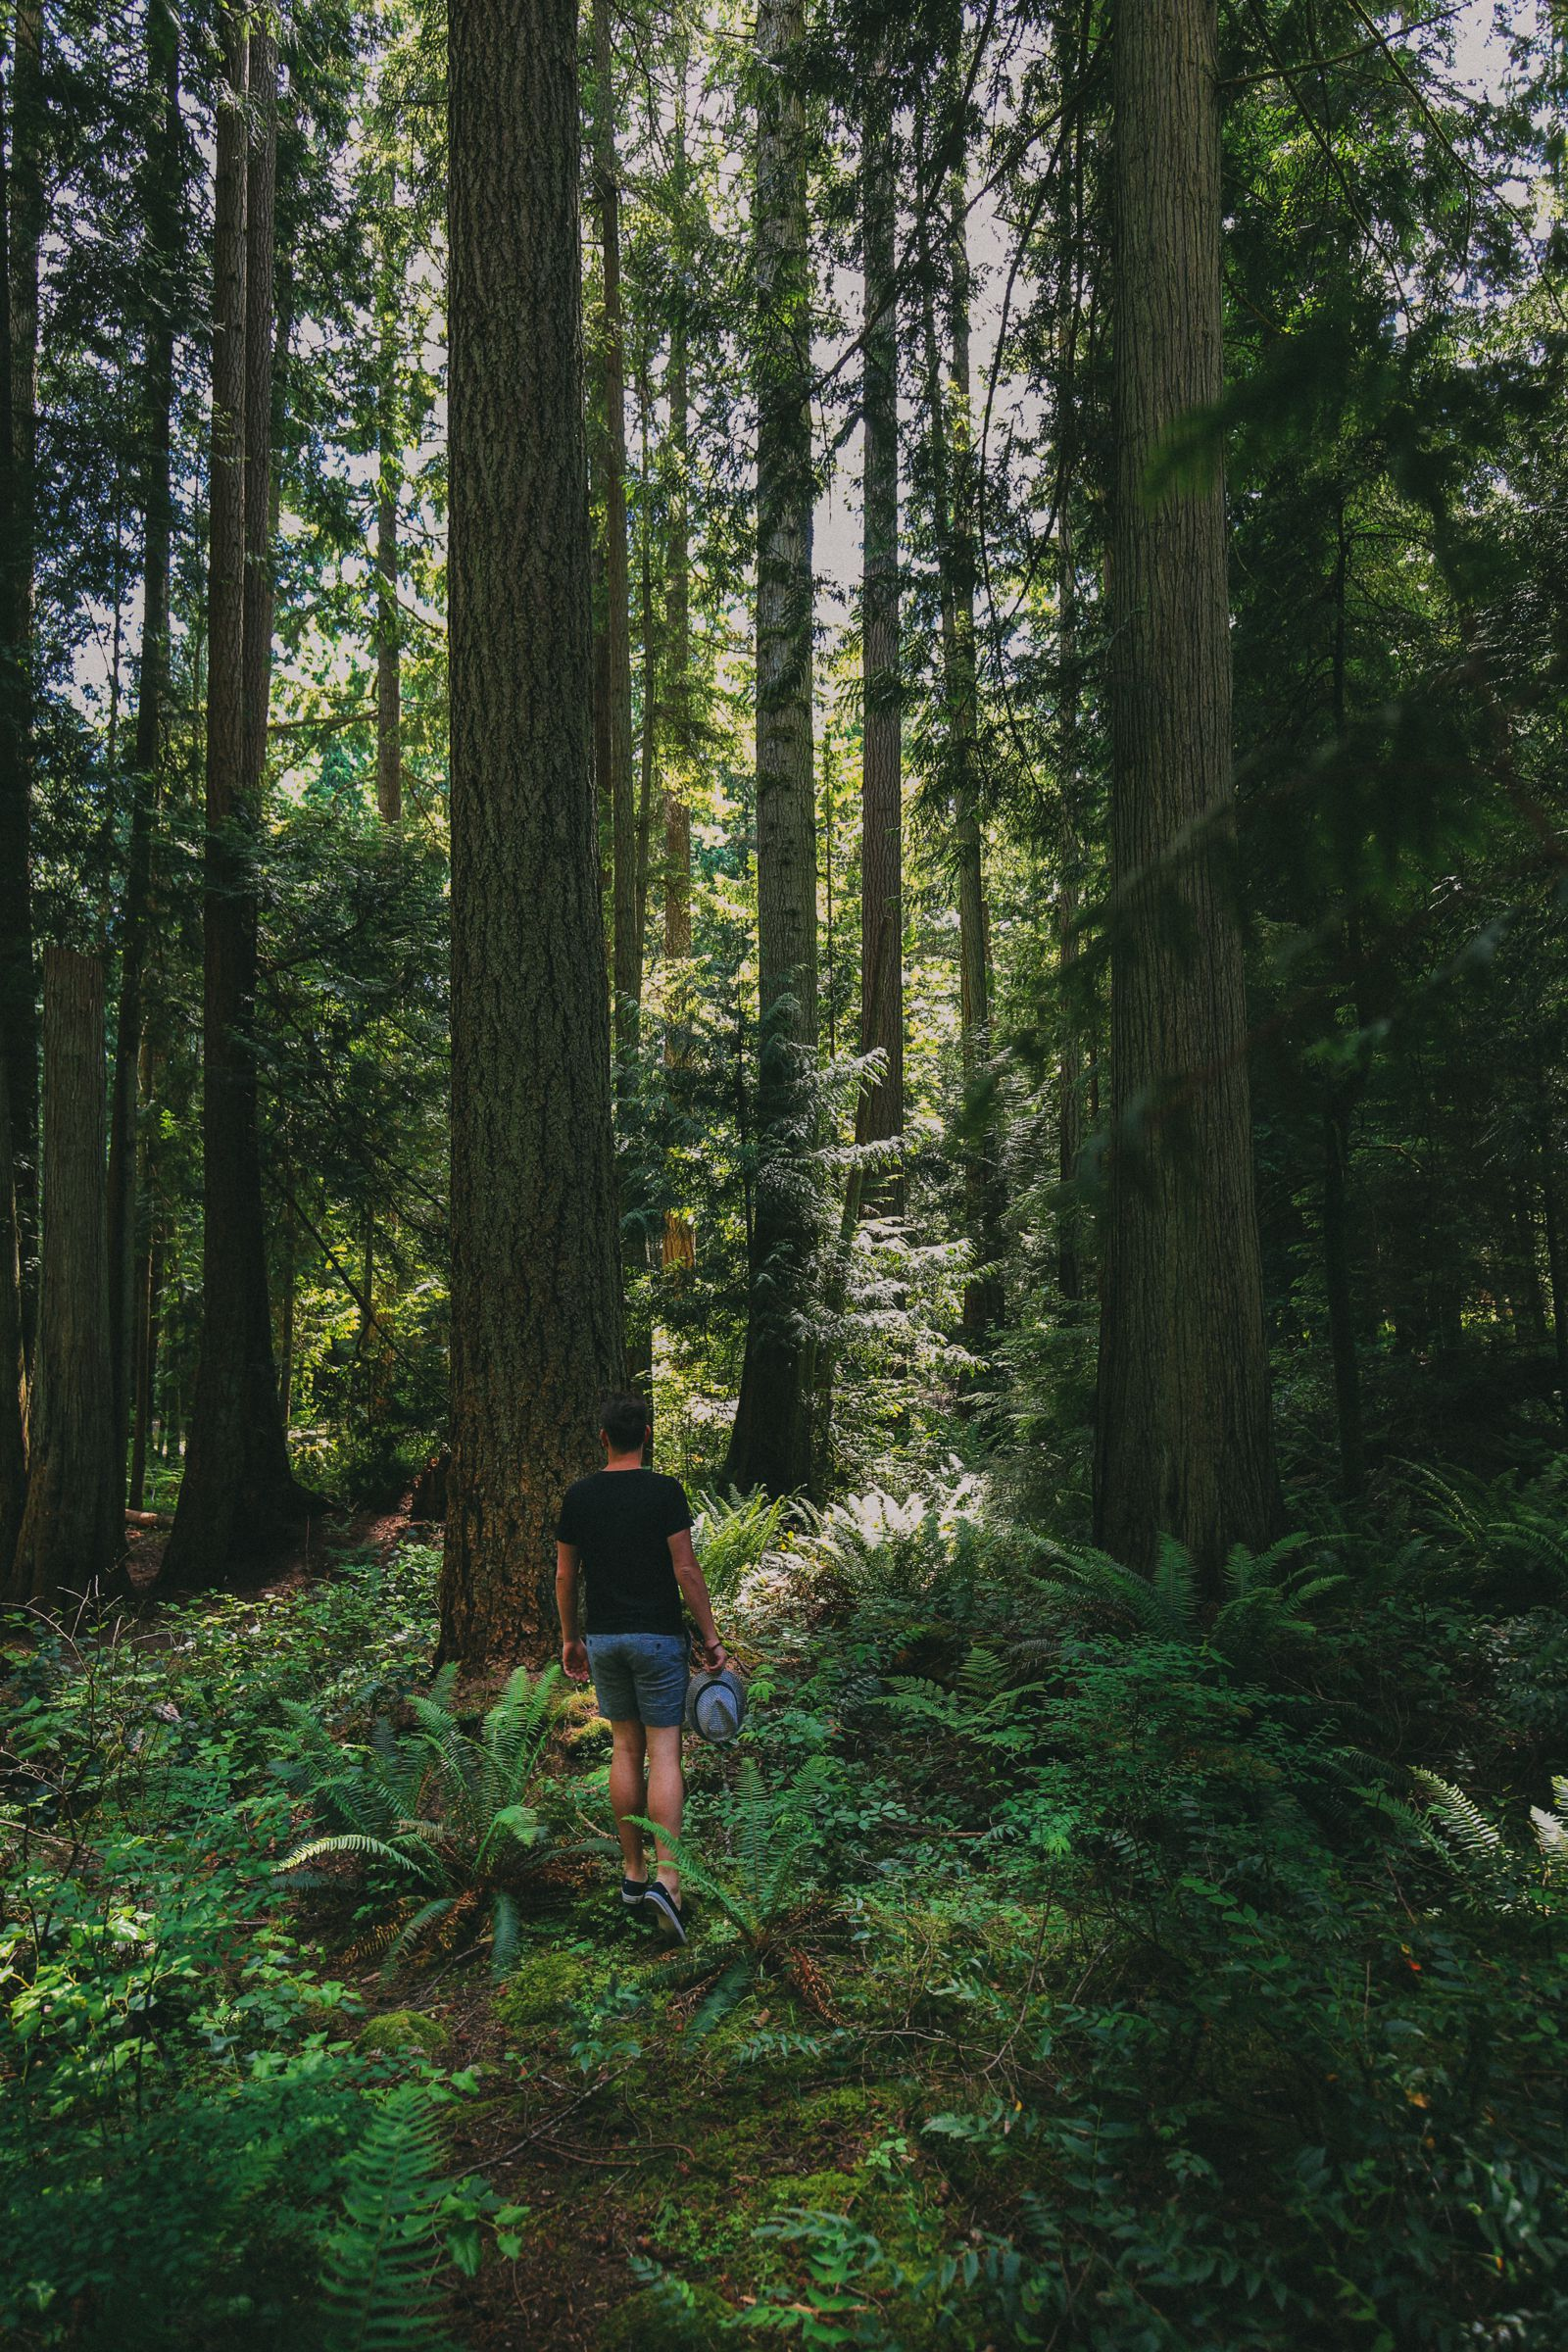 Photos And Postcards From Vancouver, Whistler, Squamish And The Sunshine Coast... In British Columbia, Canada (18)